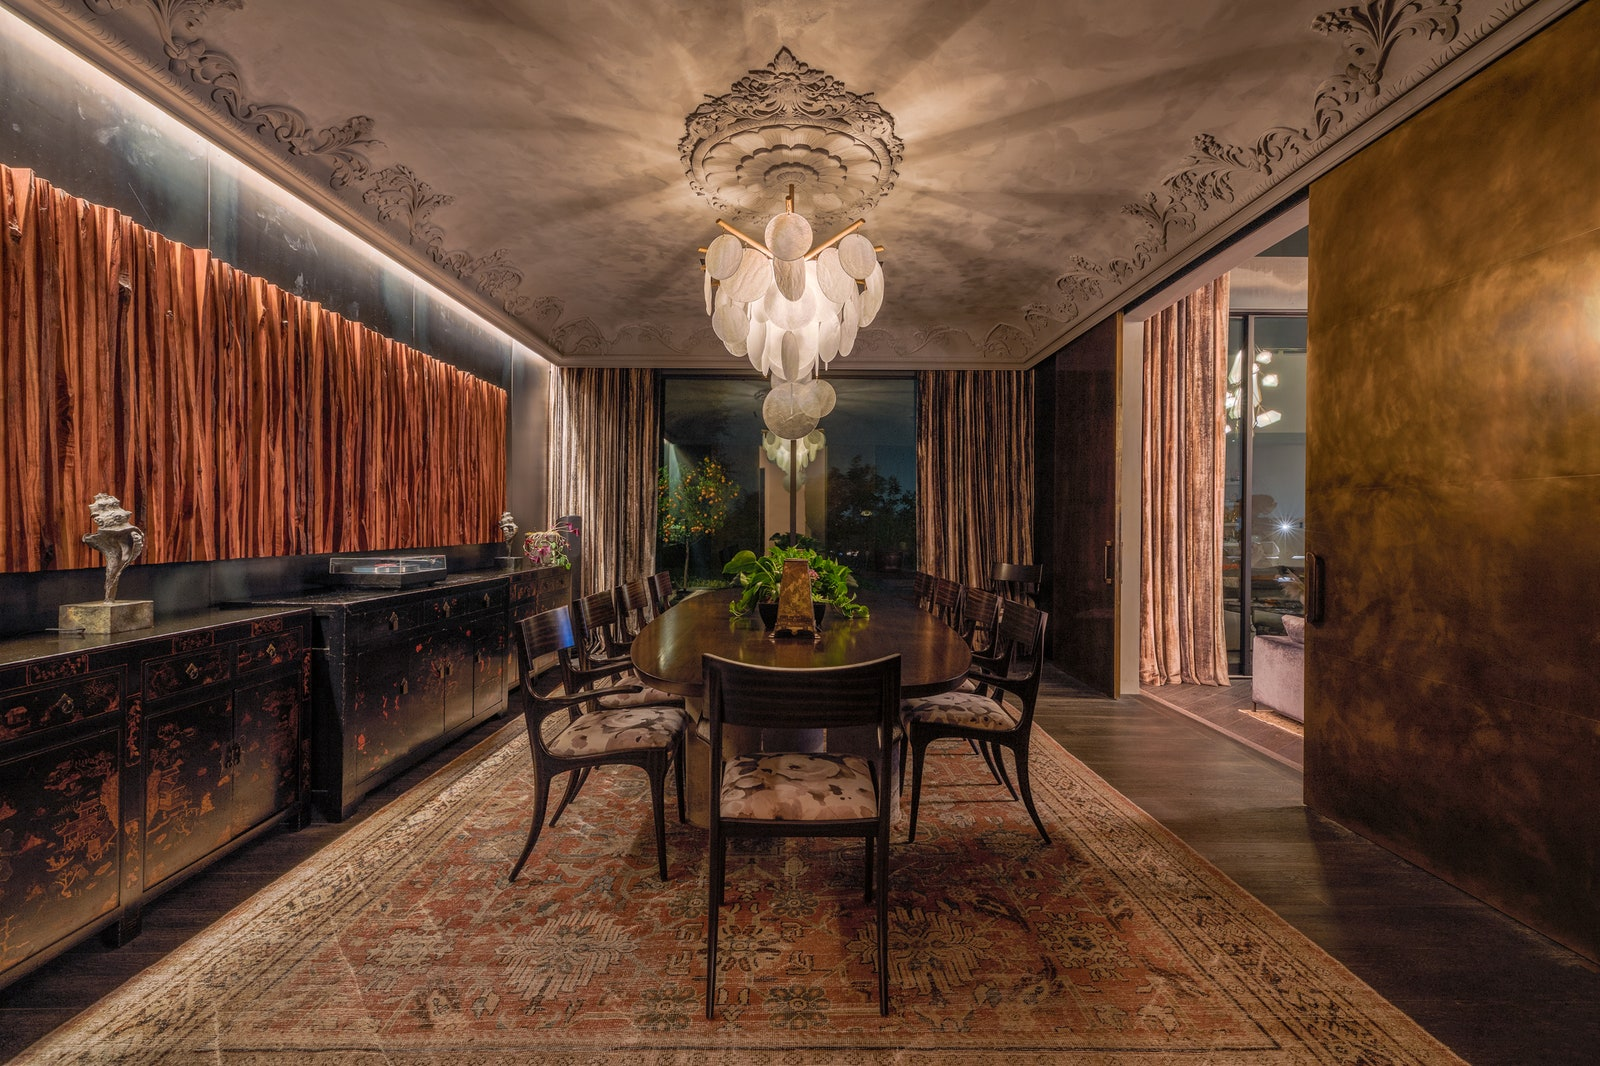 Chrissy Teigen and John Legend List Beverly Hills Home: Take a peek! grand palace You can finally move to the Grand Palace of your dreams for 72M$ Chrissy Teigen and John Legend 13 grand palace You can finally move to the Grand Palace of your dreams for 72M$ Chrissy Teigen and John Legend 13